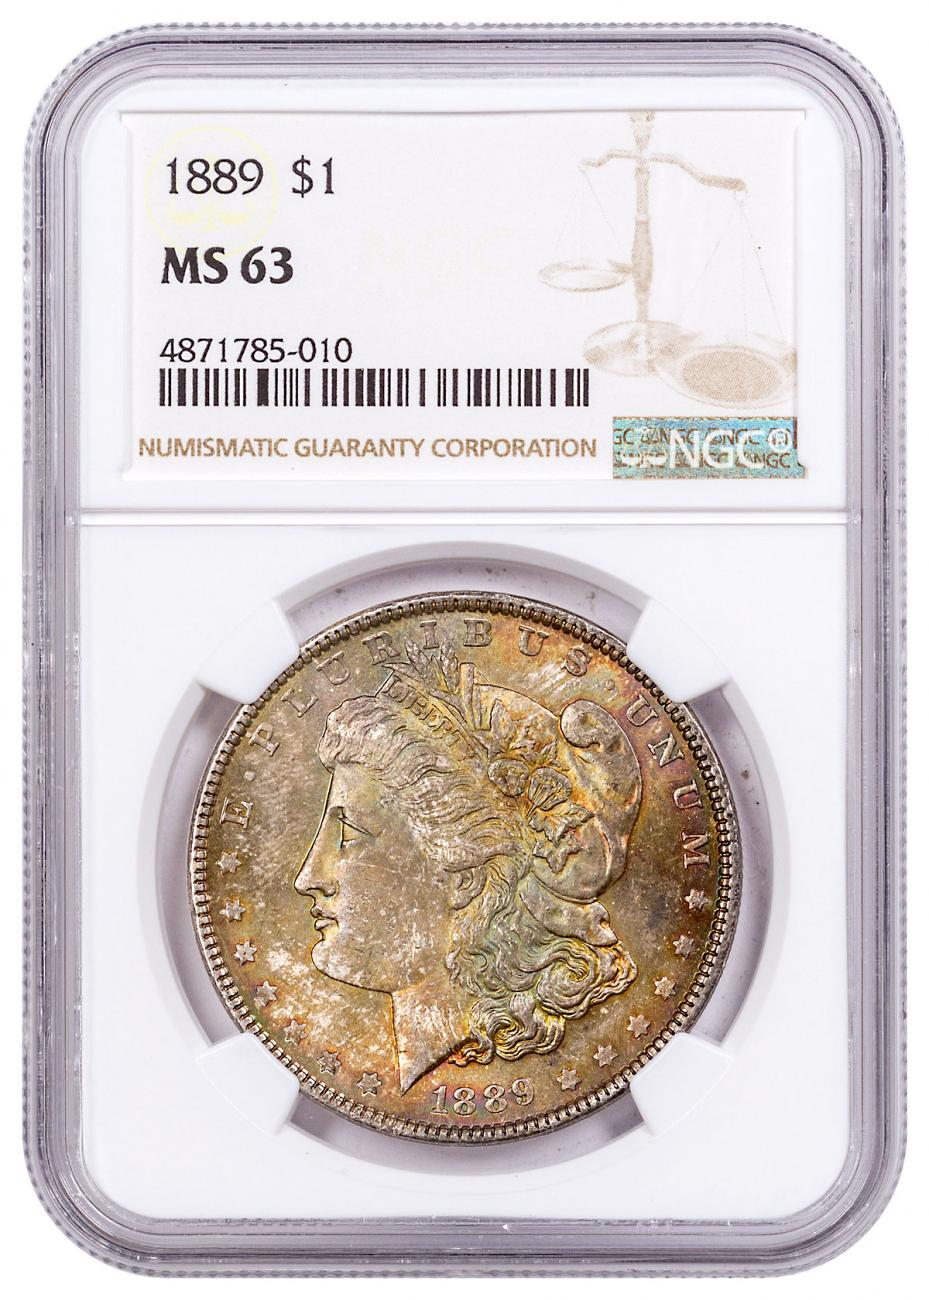 1889 Morgan Silver Dollar Toned NGC MS64 CPCR 5010